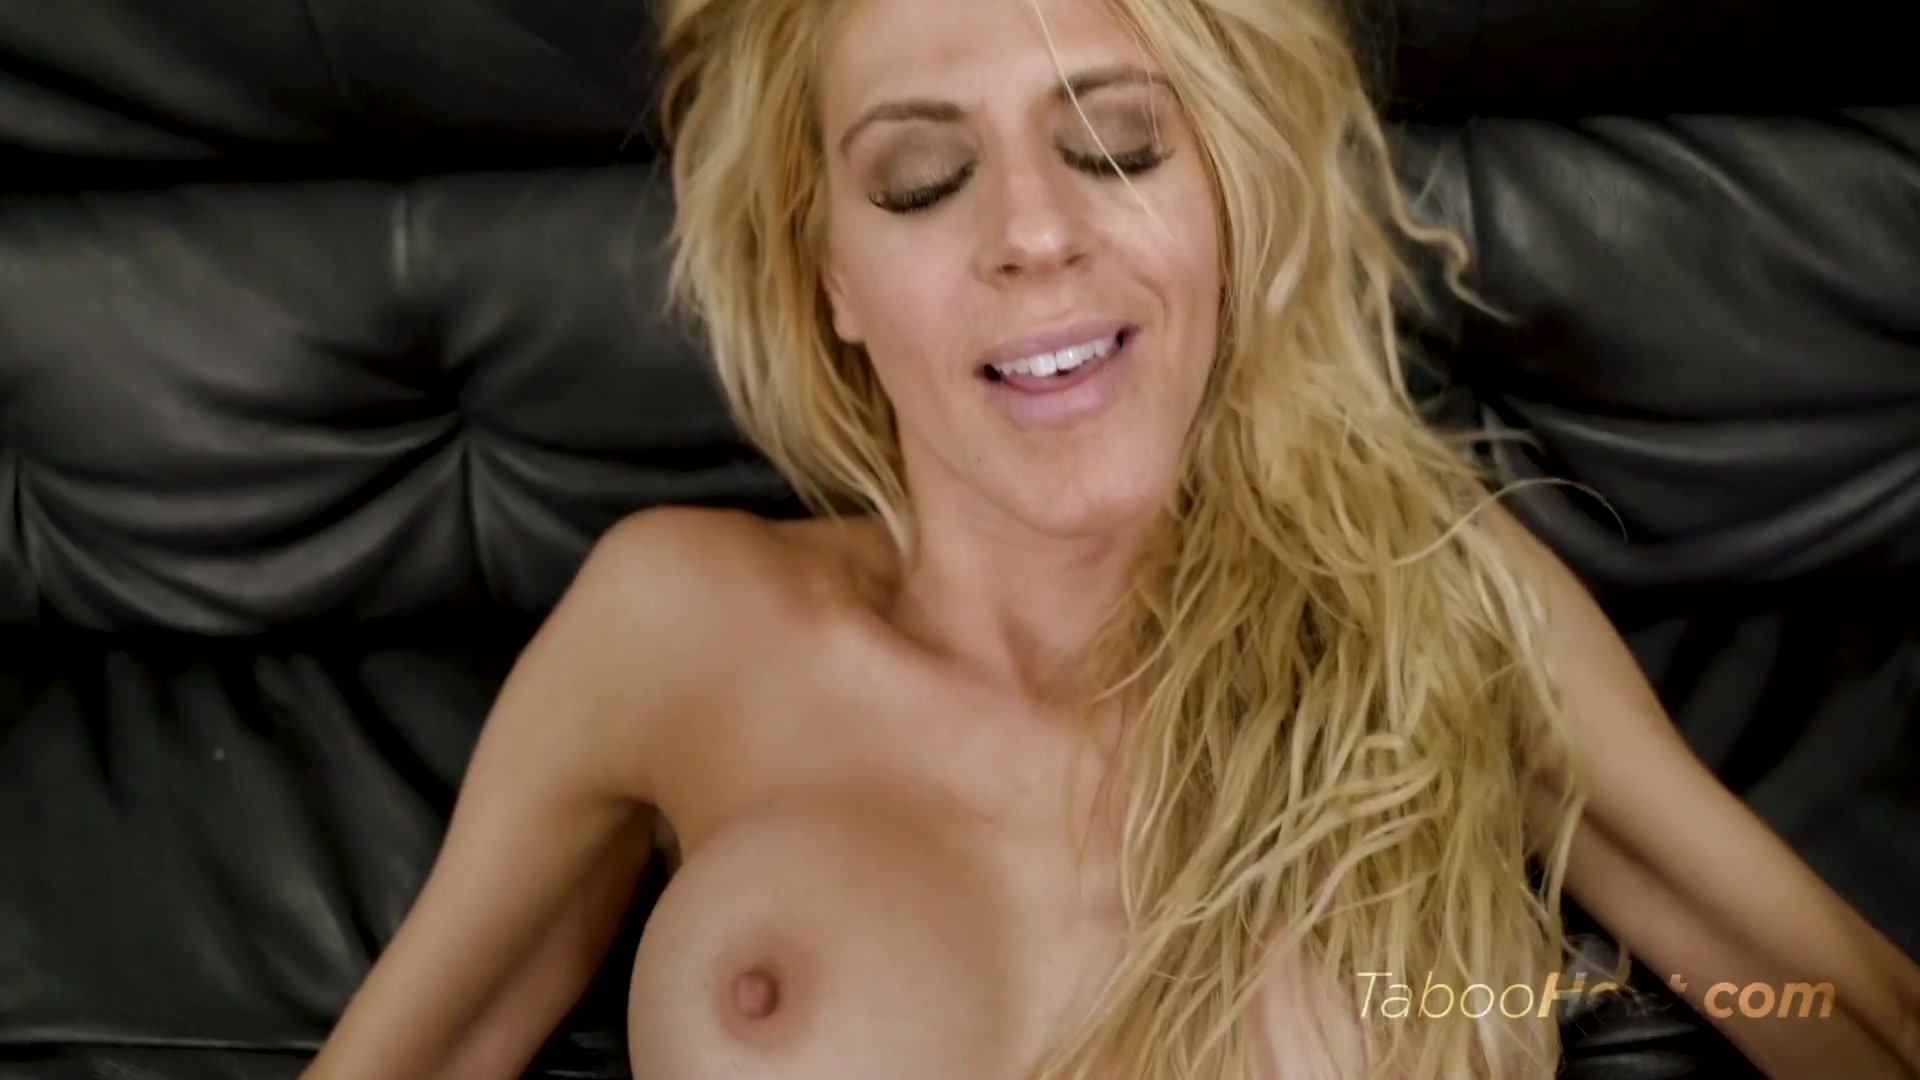 All Of Mommy S Holes Are Yours Familyporn Tv